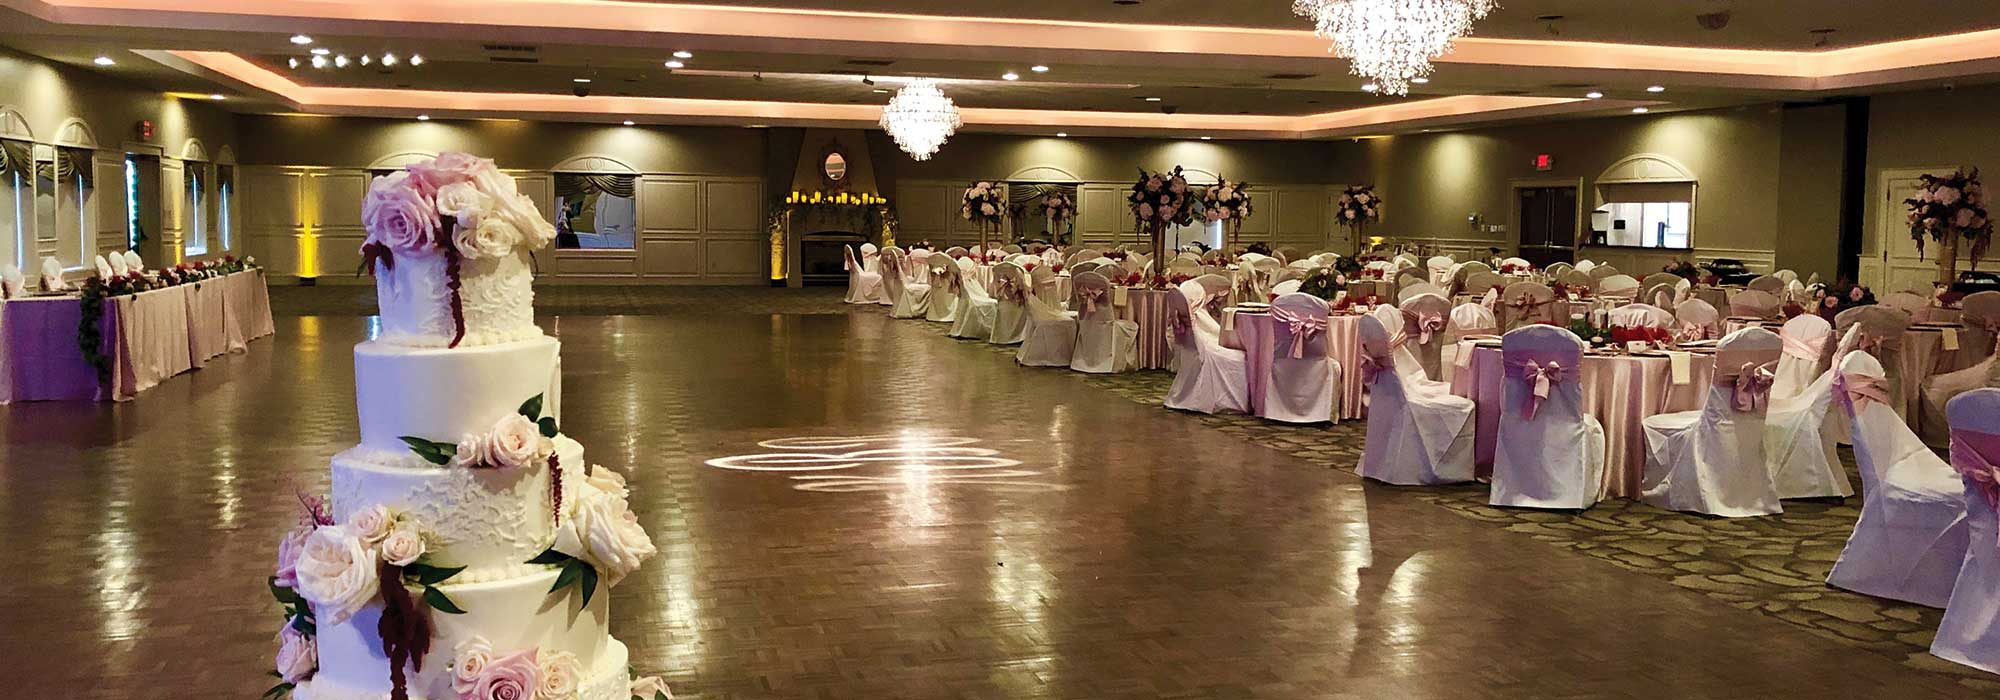 Formal Wedding Reception at The Ballroom at The Willows